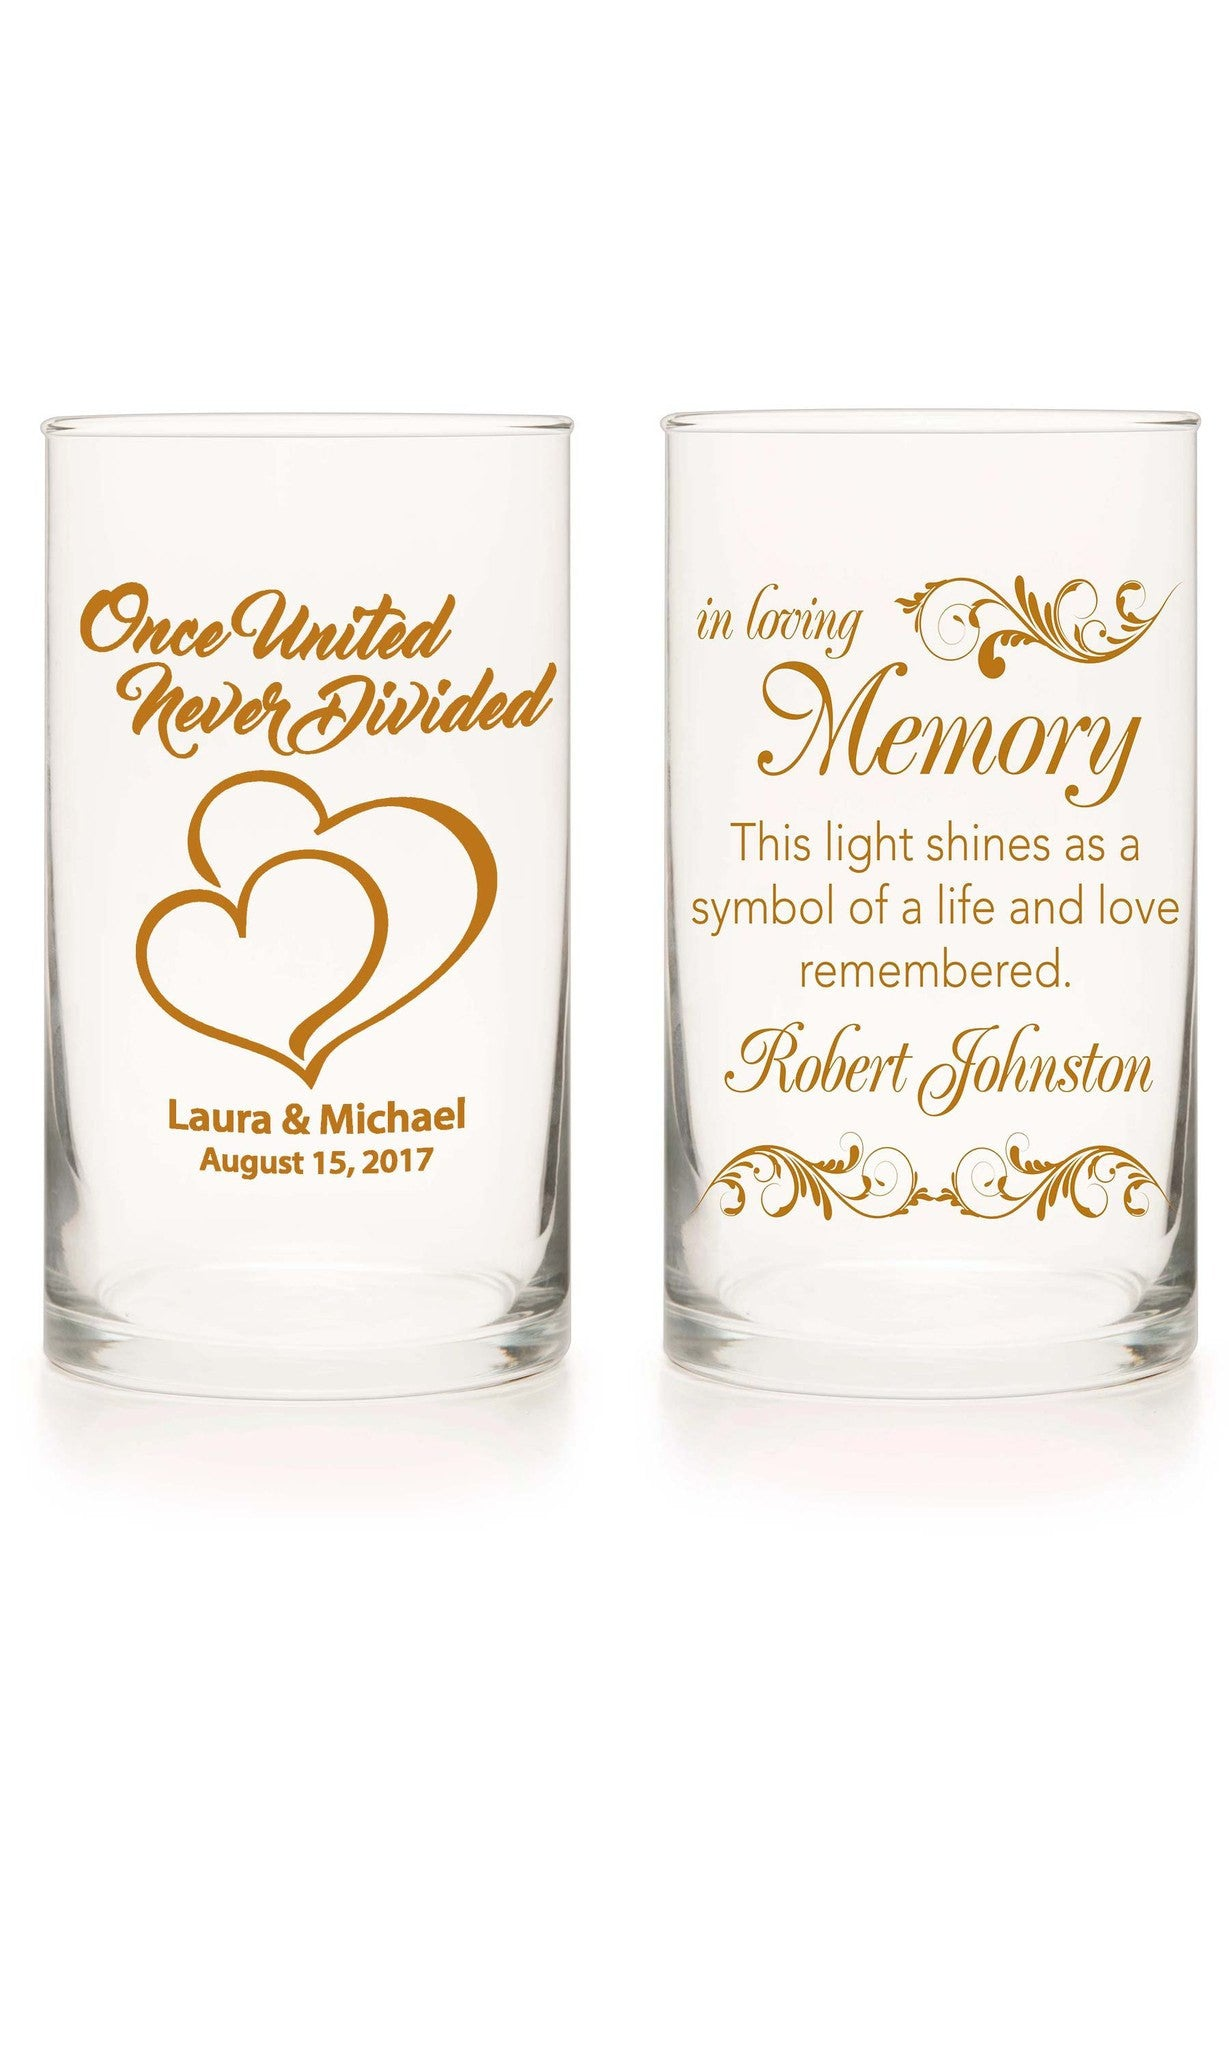 Unity Candle & Memorial Candle Set - Going To The Chapel Amber - Personalized Candle Holders - Wedding Candles - 9